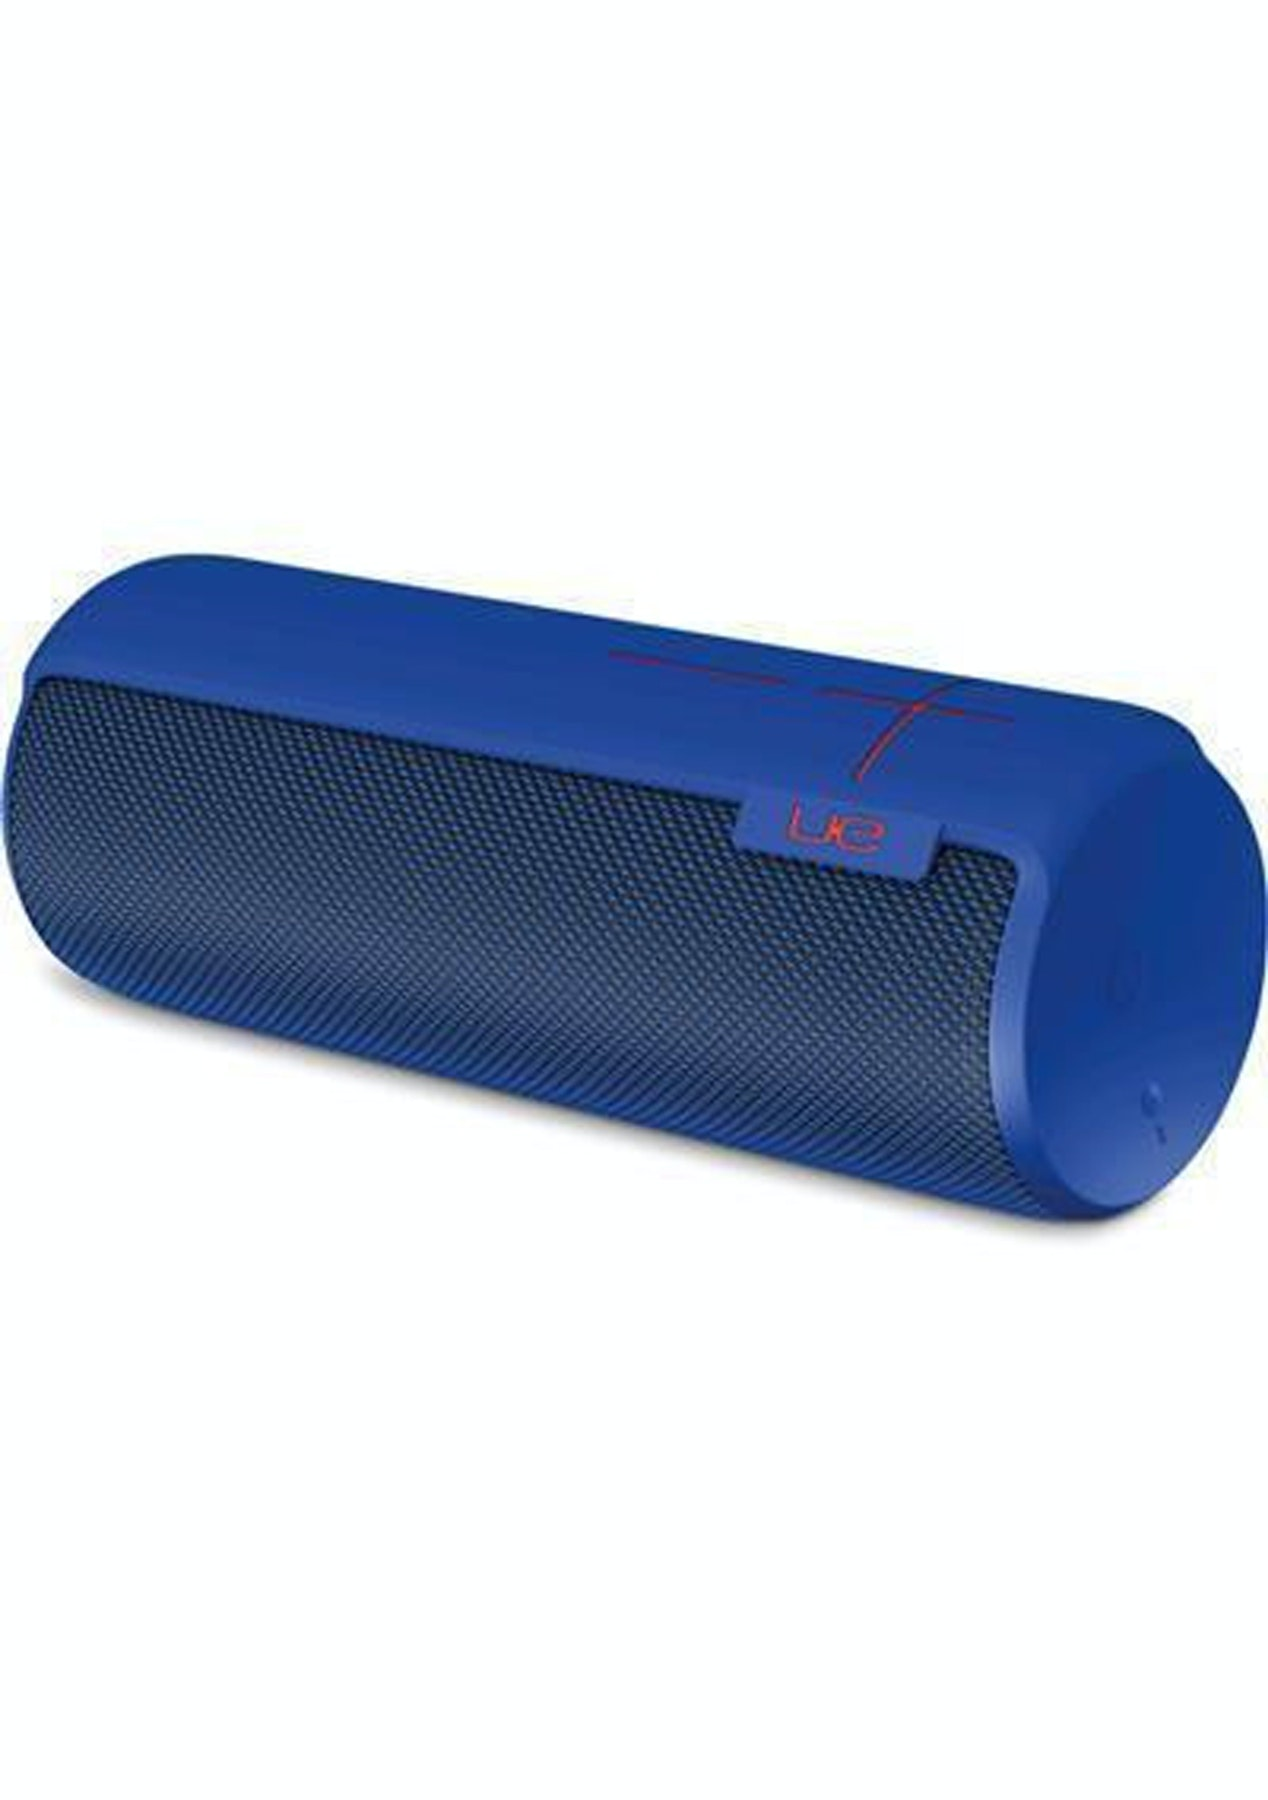 Ultimate Ears UE MEGABOOM Portable Wireless Bluetooth